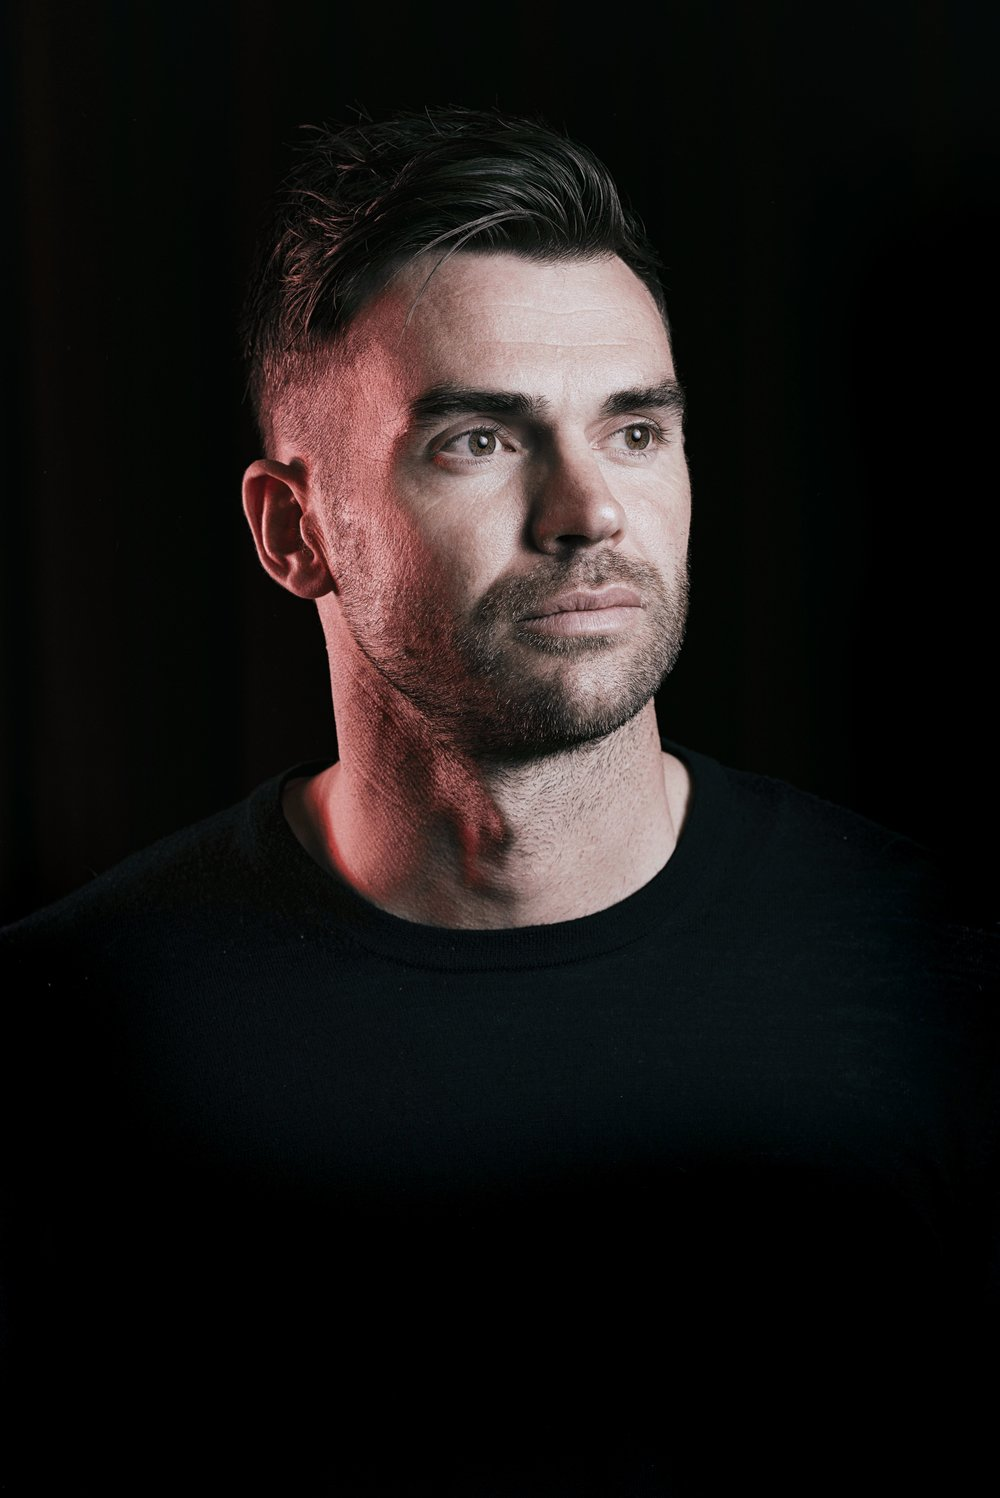 JAMES ANDERSON CRICKET PLAYER PICTURED AT OLD TRAFFORD CRICKET GROUND PHOTO CREDIT PAUL COOPER